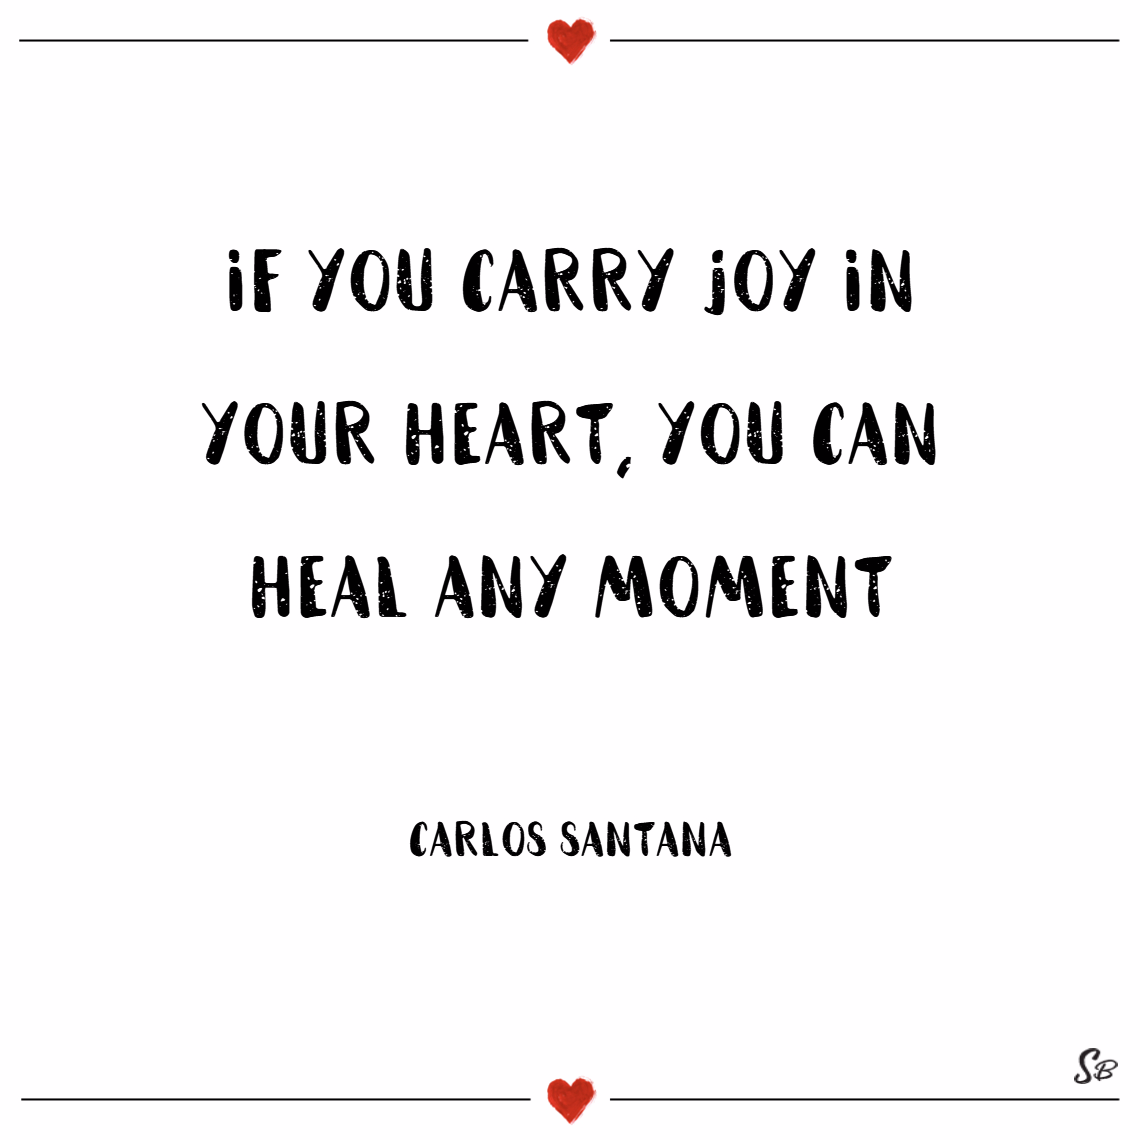 If you carry joy in your heart, you can heal any moment. – carlos santana joy quotes